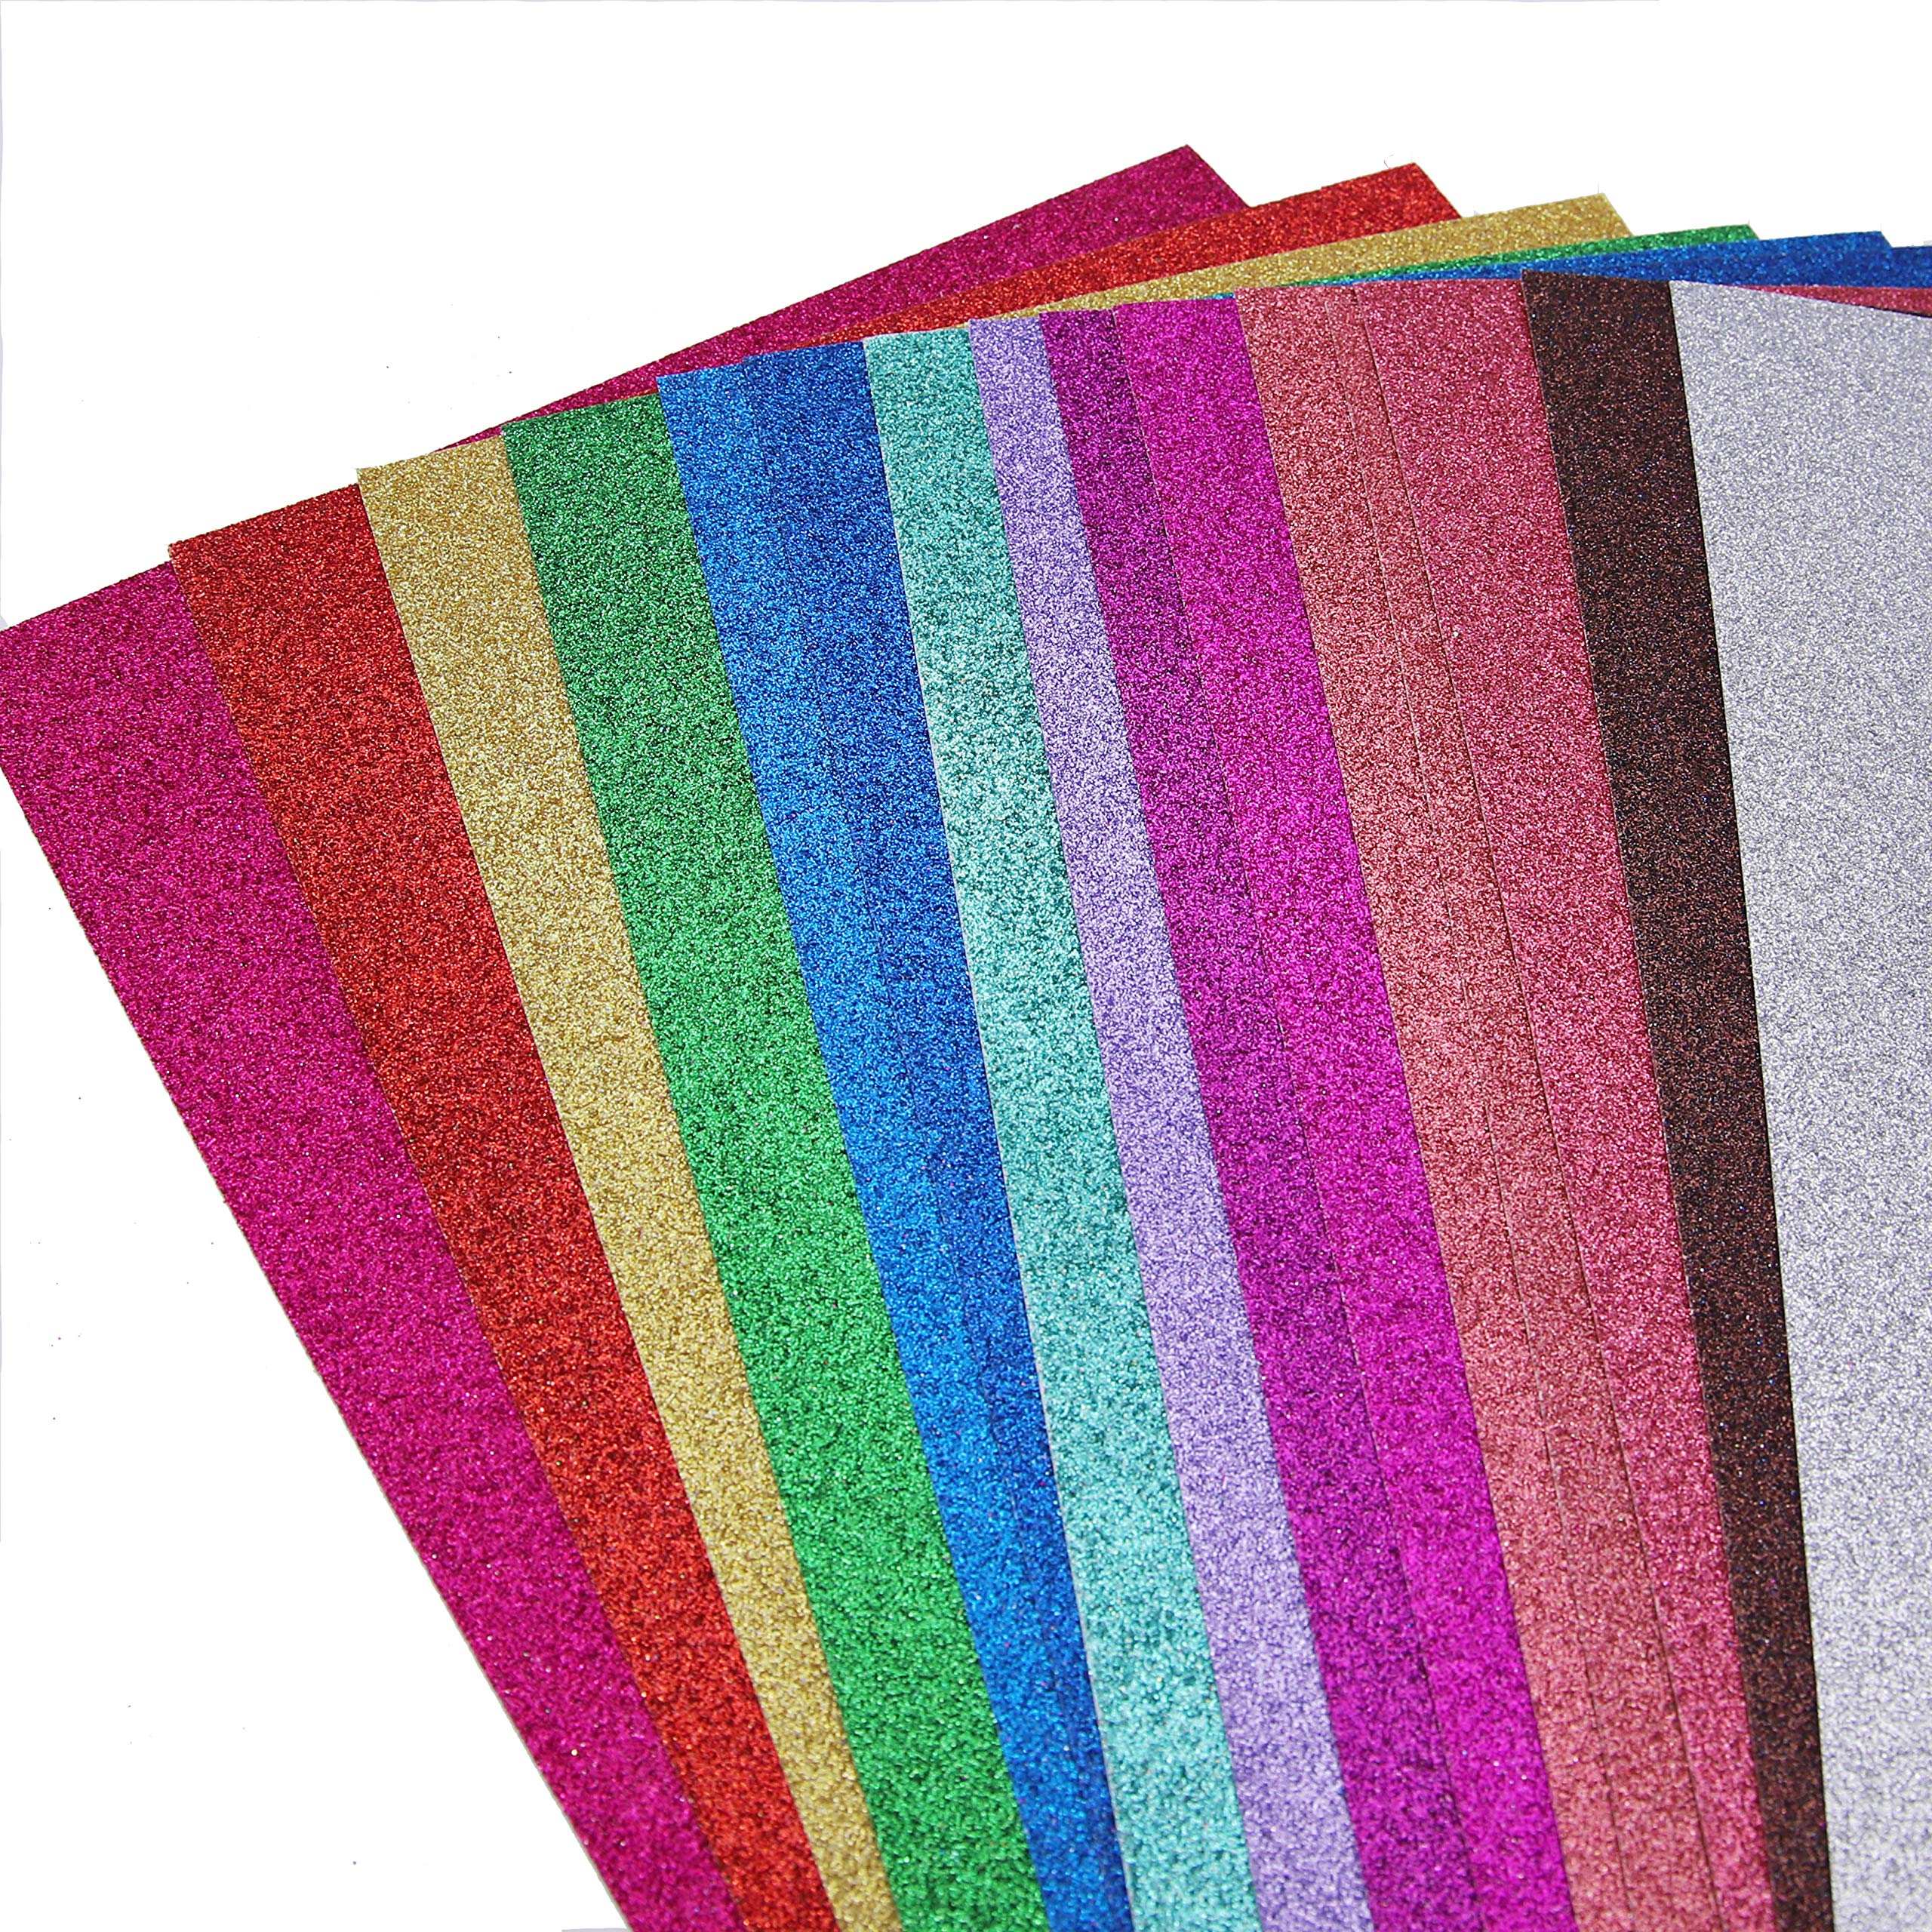 Glitter Cardstock Paper,30 sheets, Sparkle Shinny Craft Sheets, Multi Color Rainbow Glitter Cardstock, Premium A4 Glitter Paper,300 GSM, DIY Party Decorations,15 Colors, Multipack (Pack of 2)